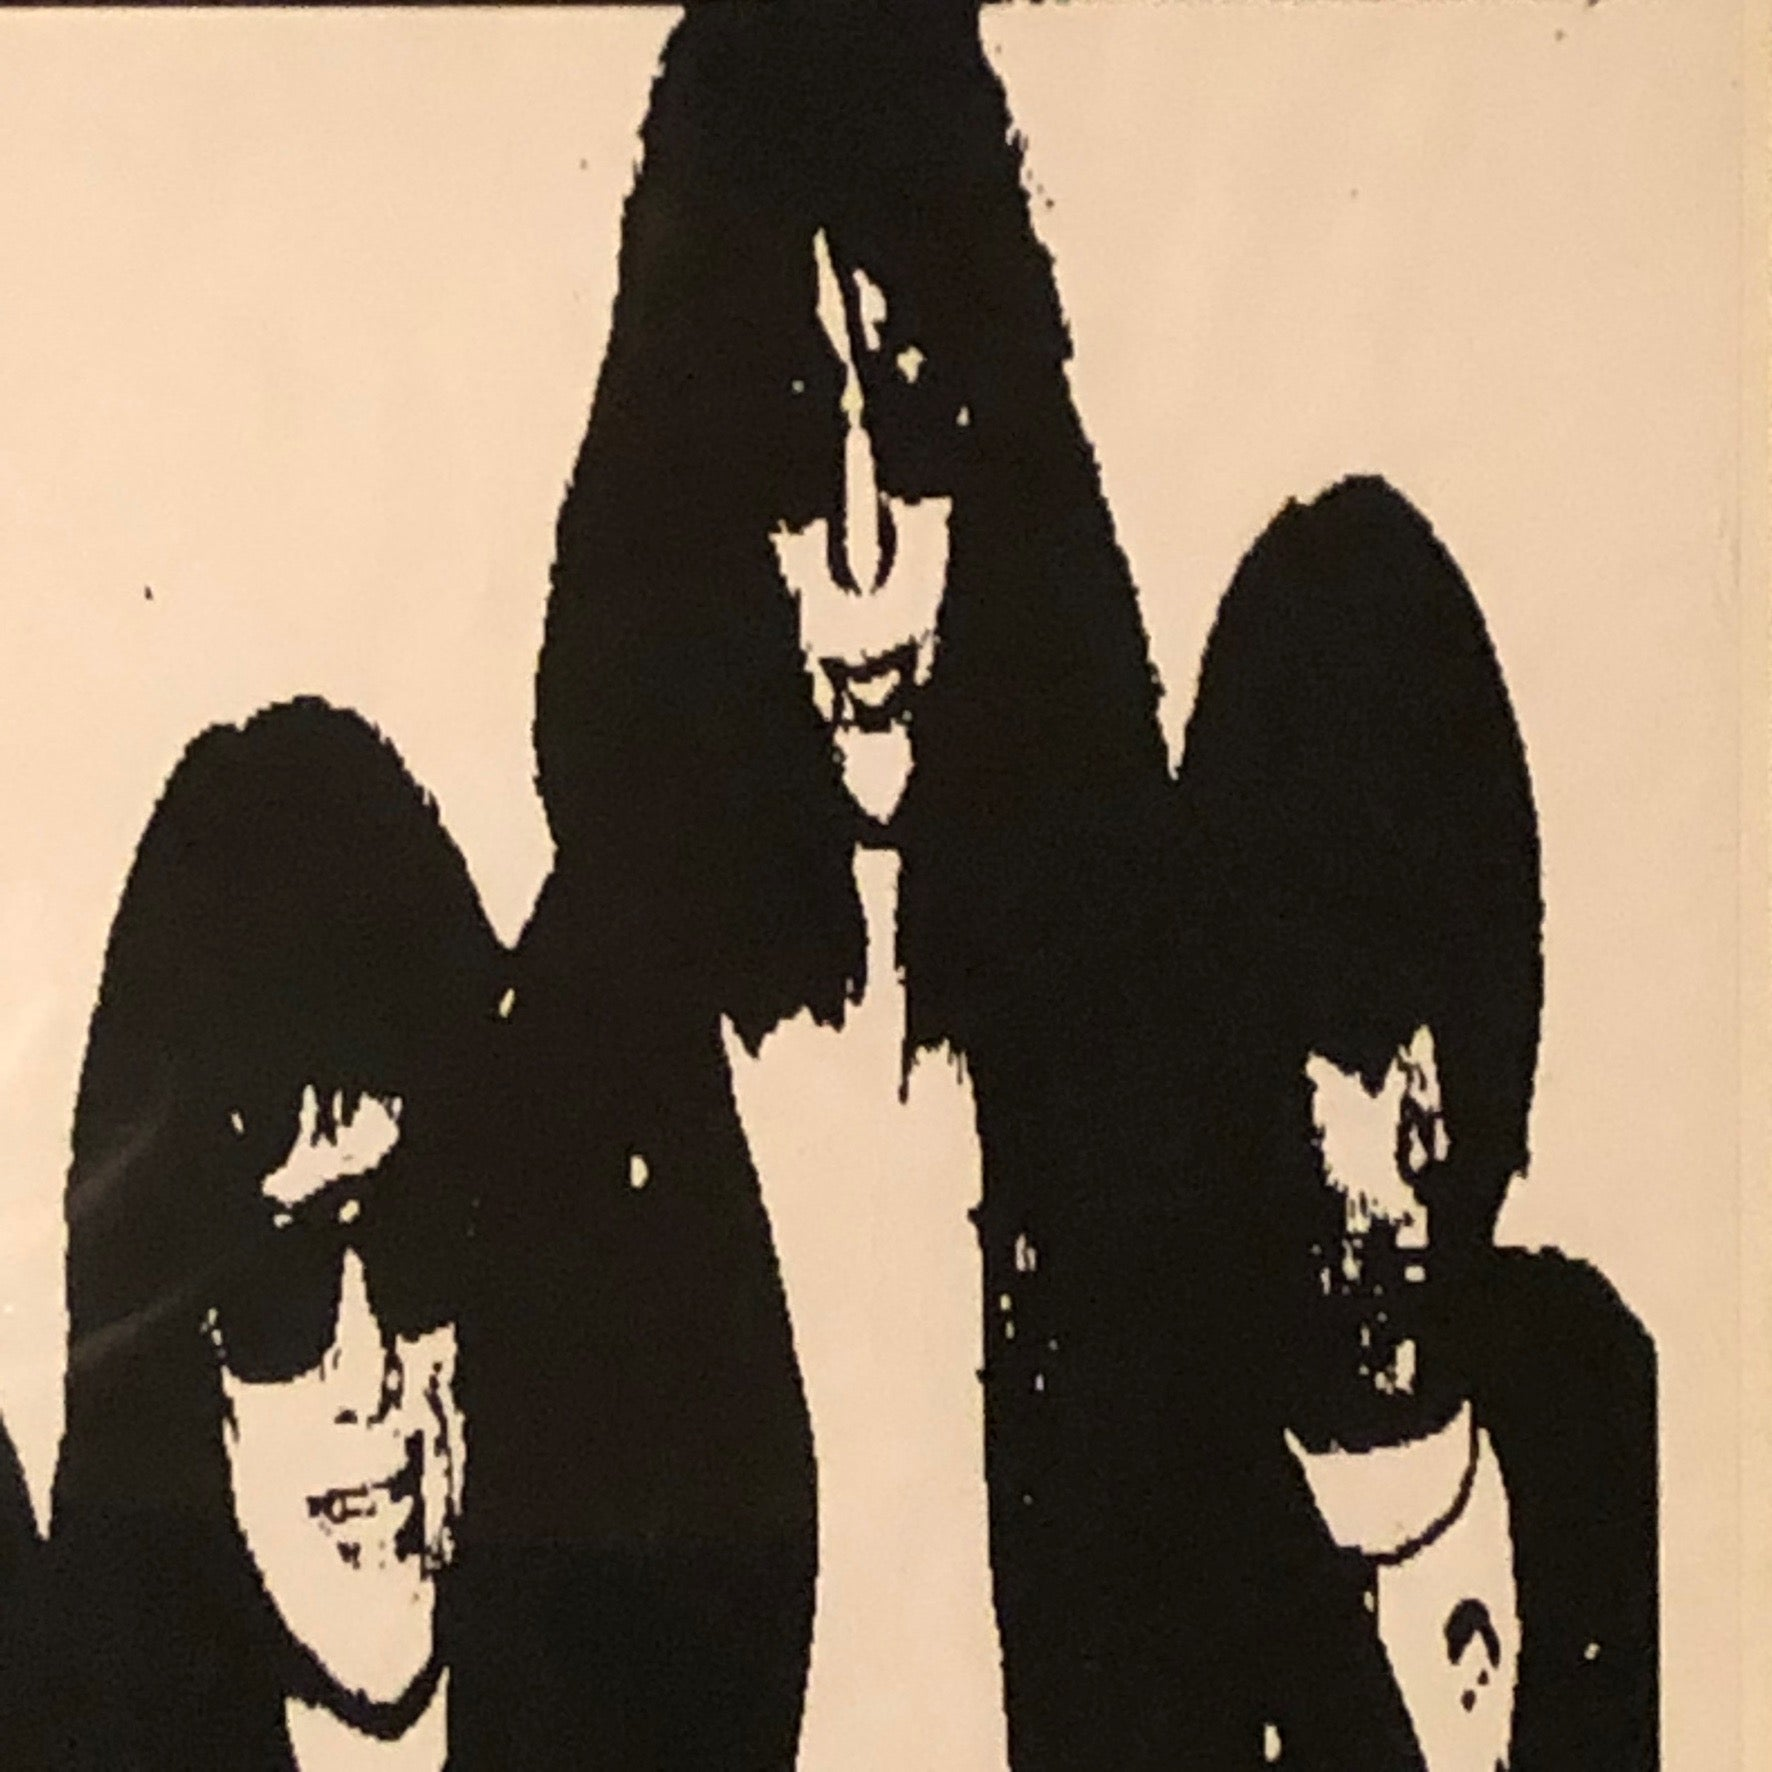 Rare Ramones Poster from Amsterdam Concert - 1987 - Punk Rock Memorabilia - New York Music Scene  - European Tour - Joey Ramones